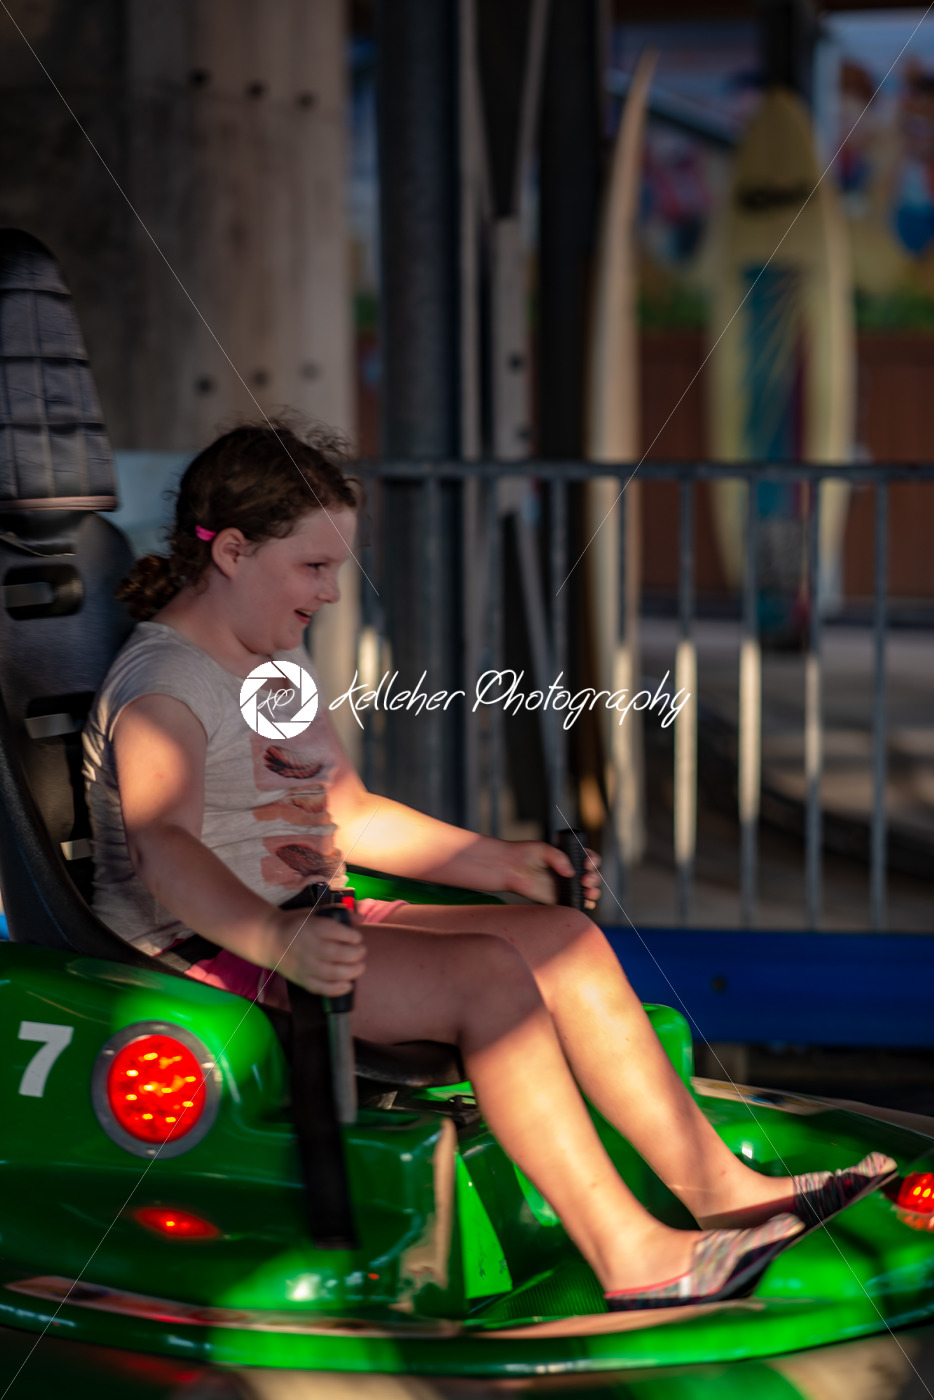 Happy young girl rides electric bumper car amusement ride on shore boardwalk - Kelleher Photography Store